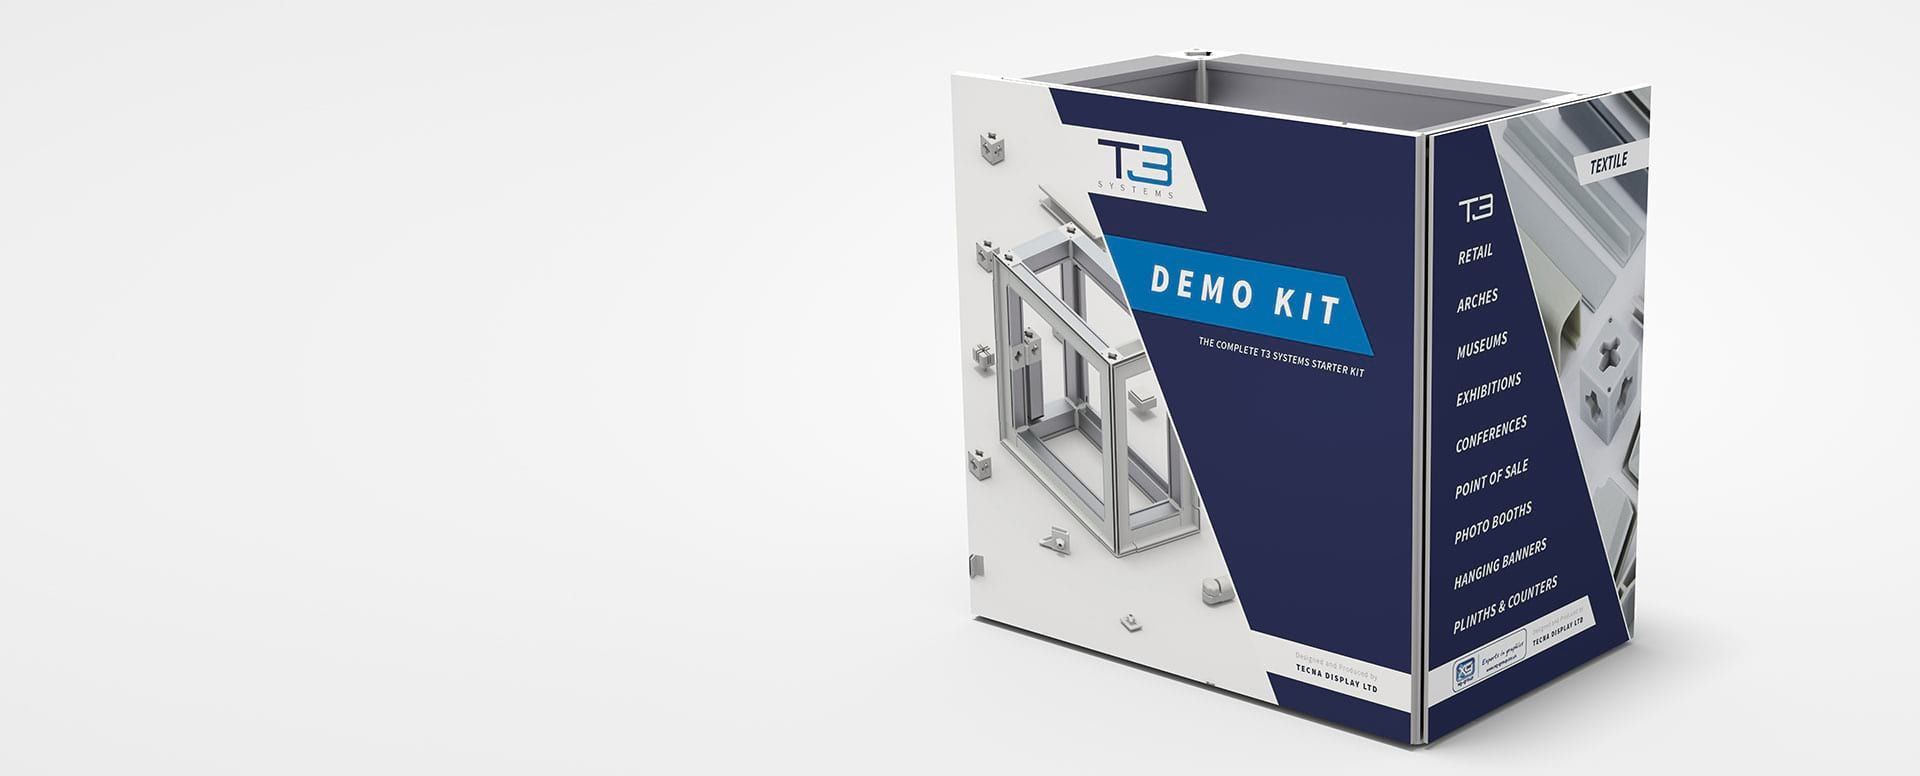 Display & Exhibition Stand Display Solutions from T3 Systems